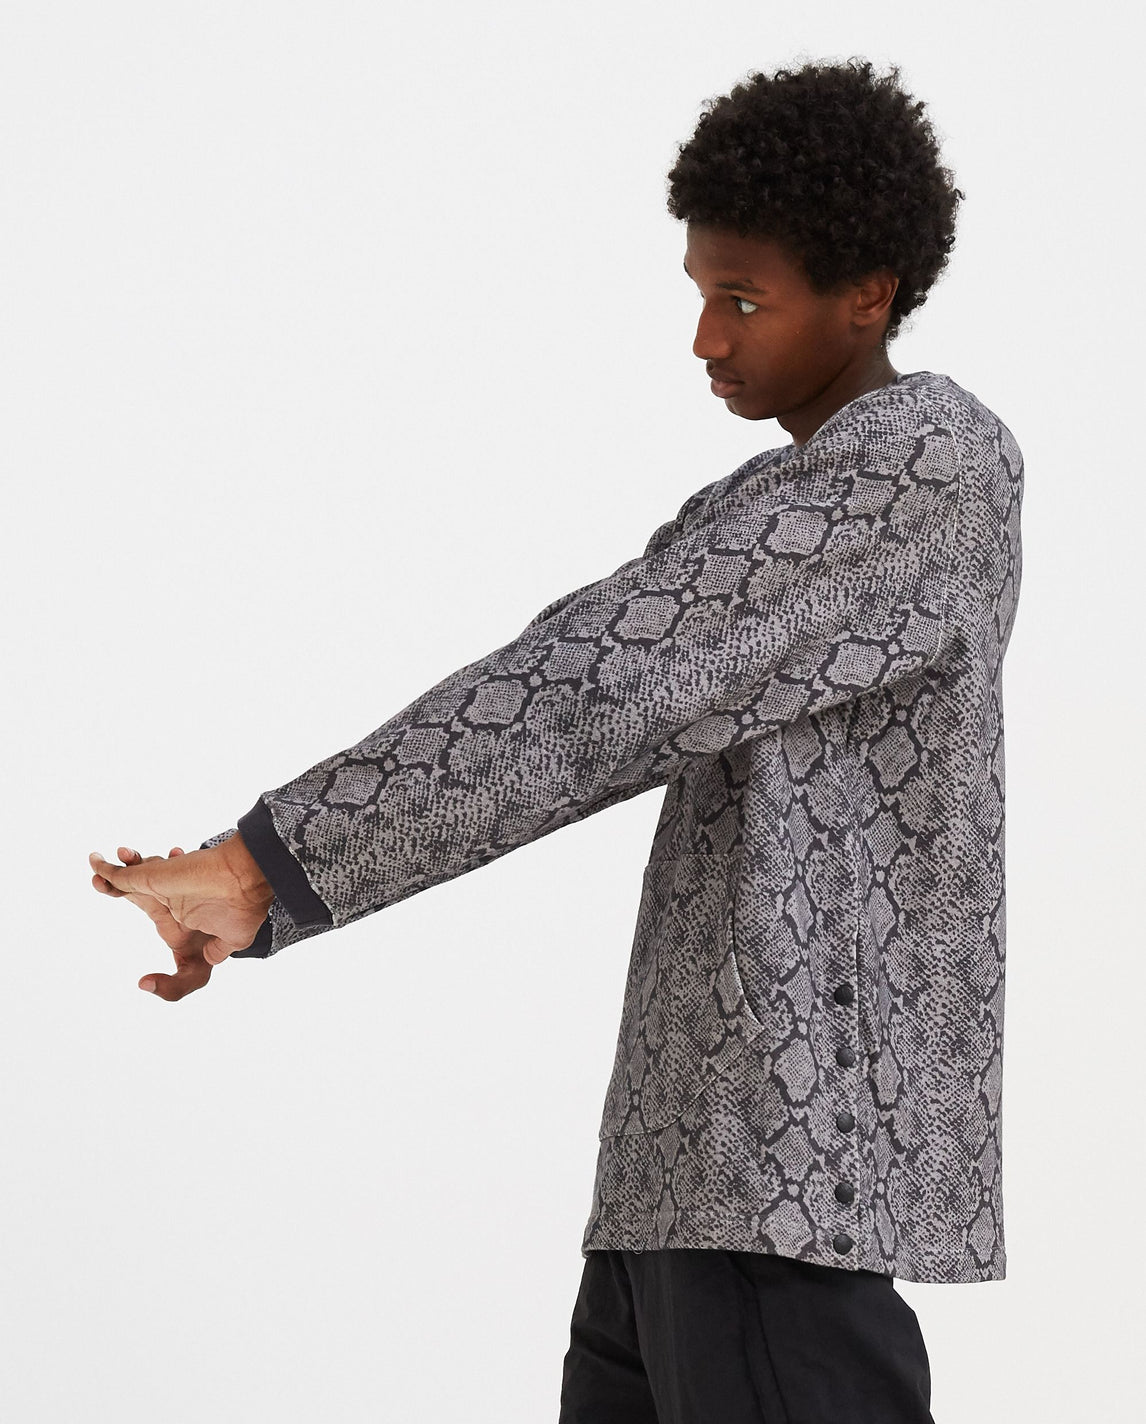 Python Printed Sweatshirt - Grey MENS WHITE MOUNTAINEERING